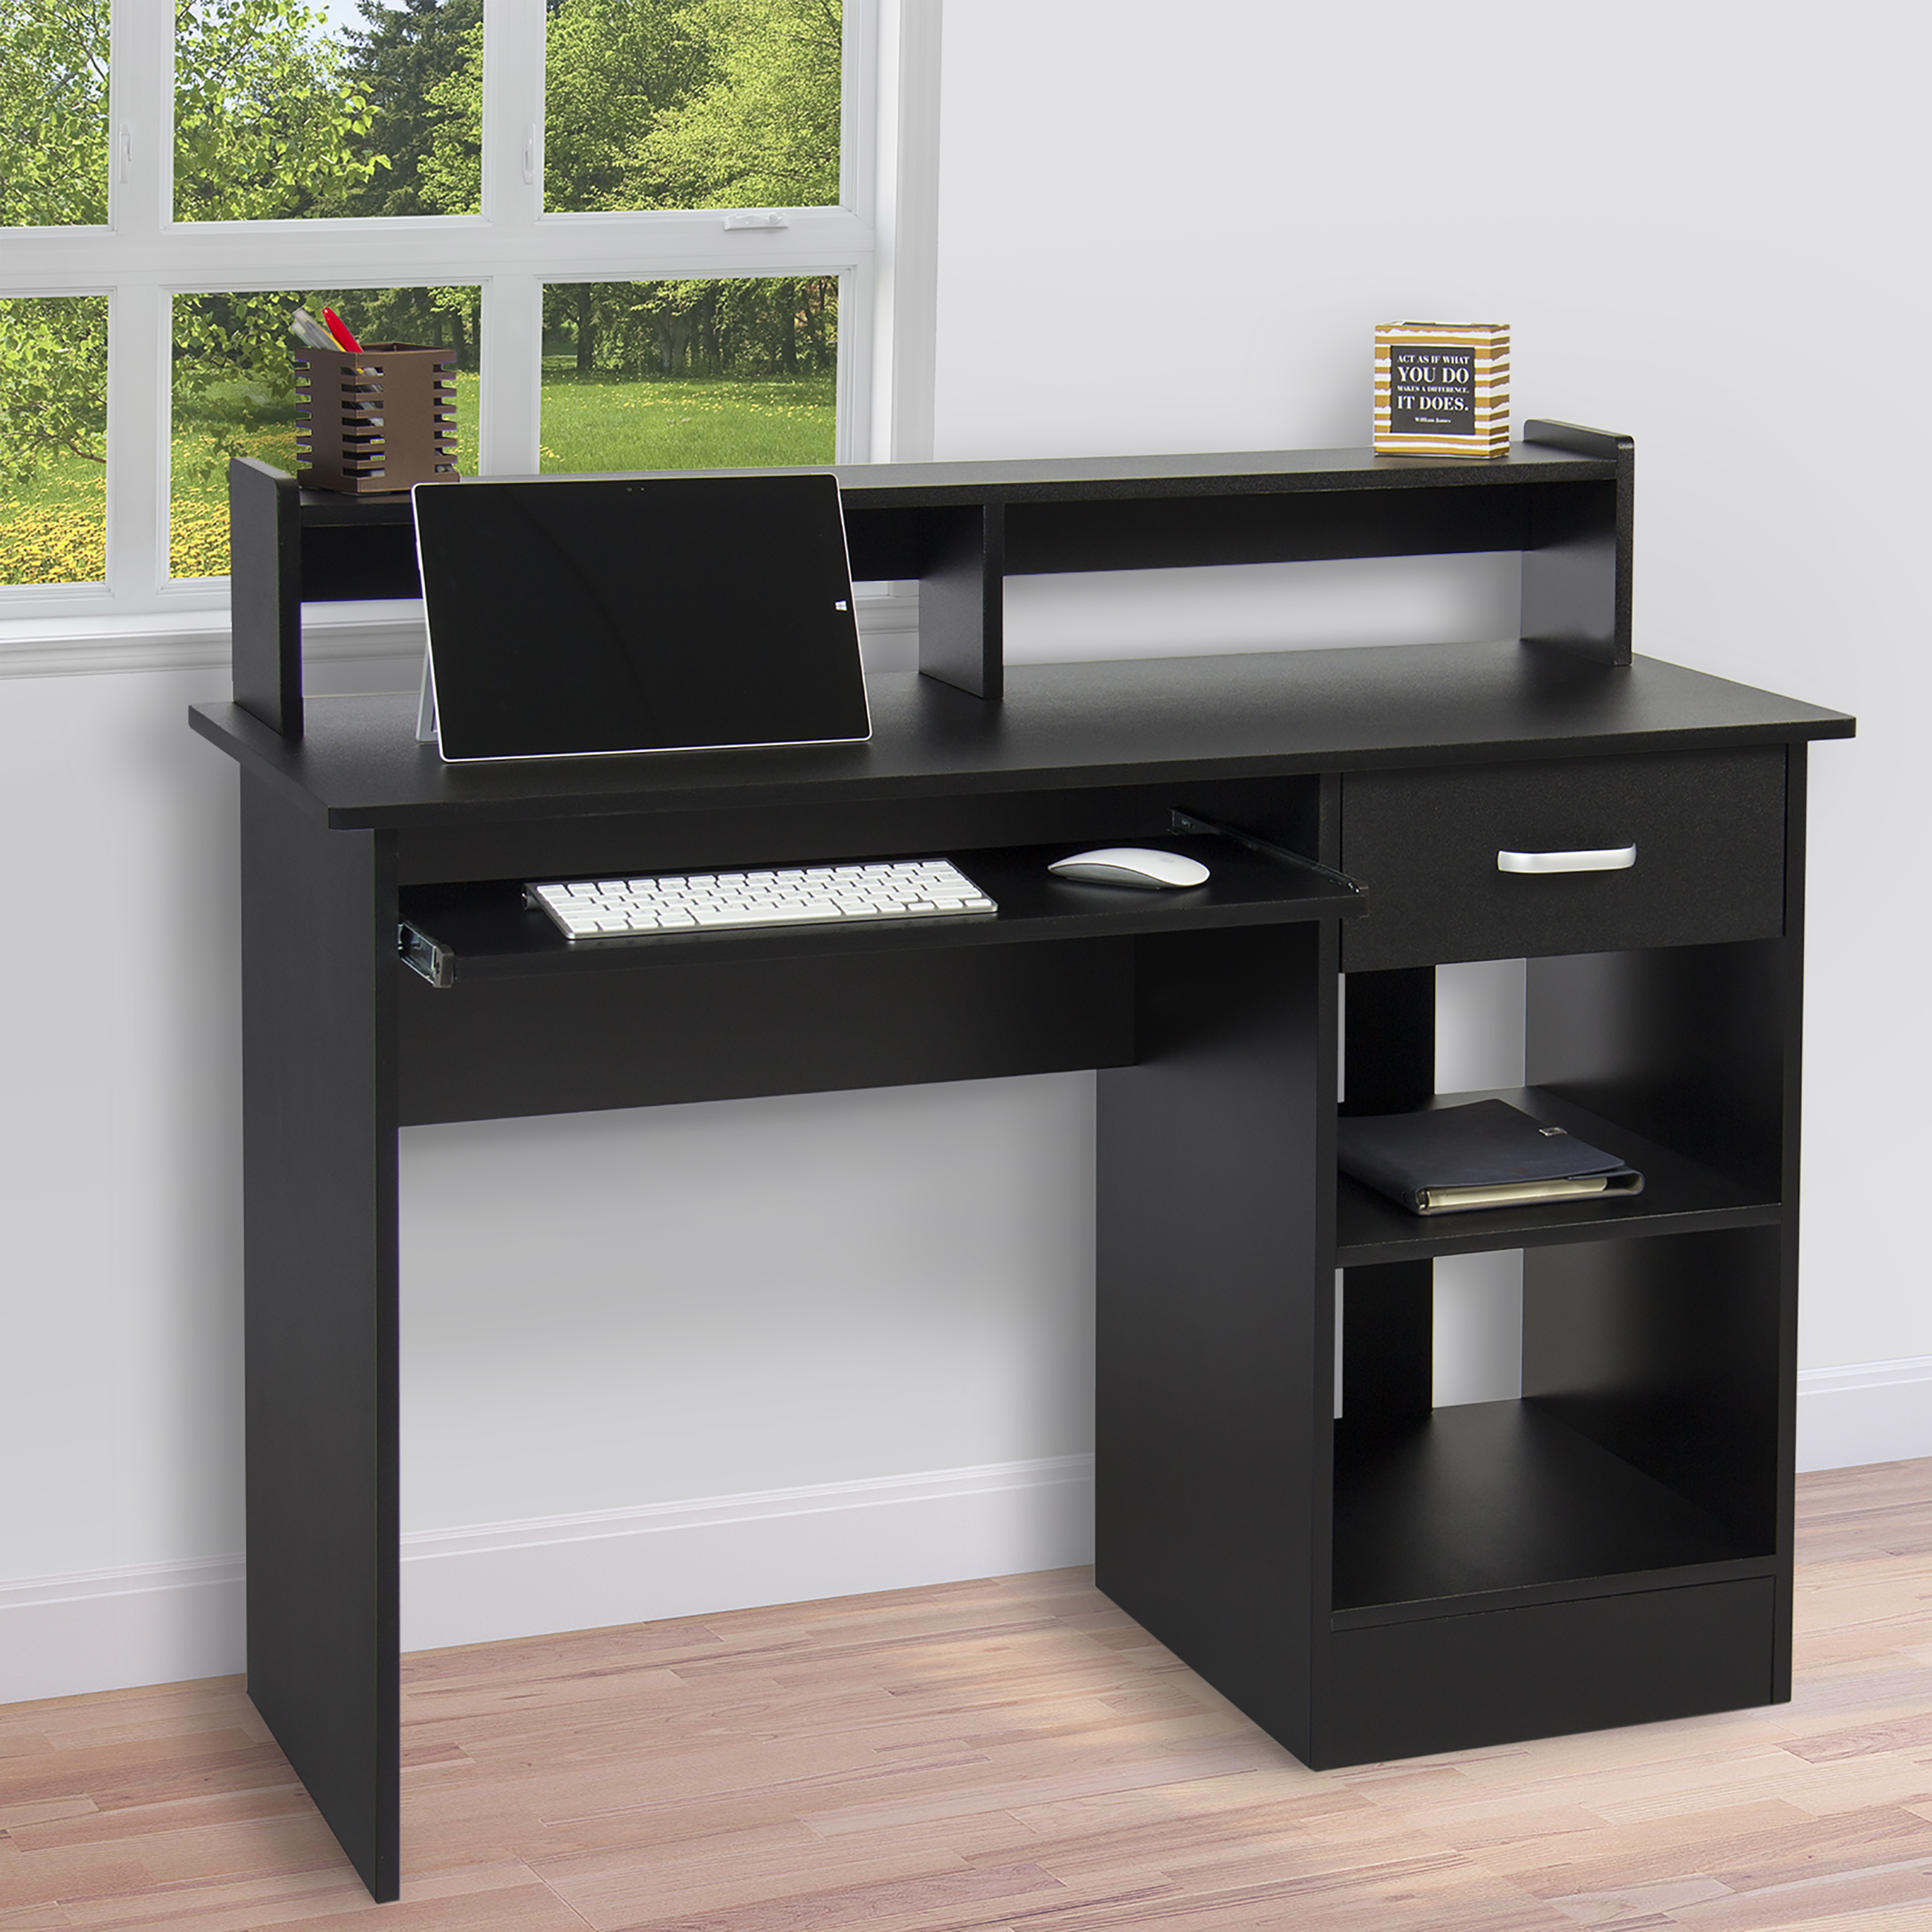 Superbe Best Choice Products Computer Desk Home Laptop Table College Home Office  Furniture Work Station   Black   Walmart.com